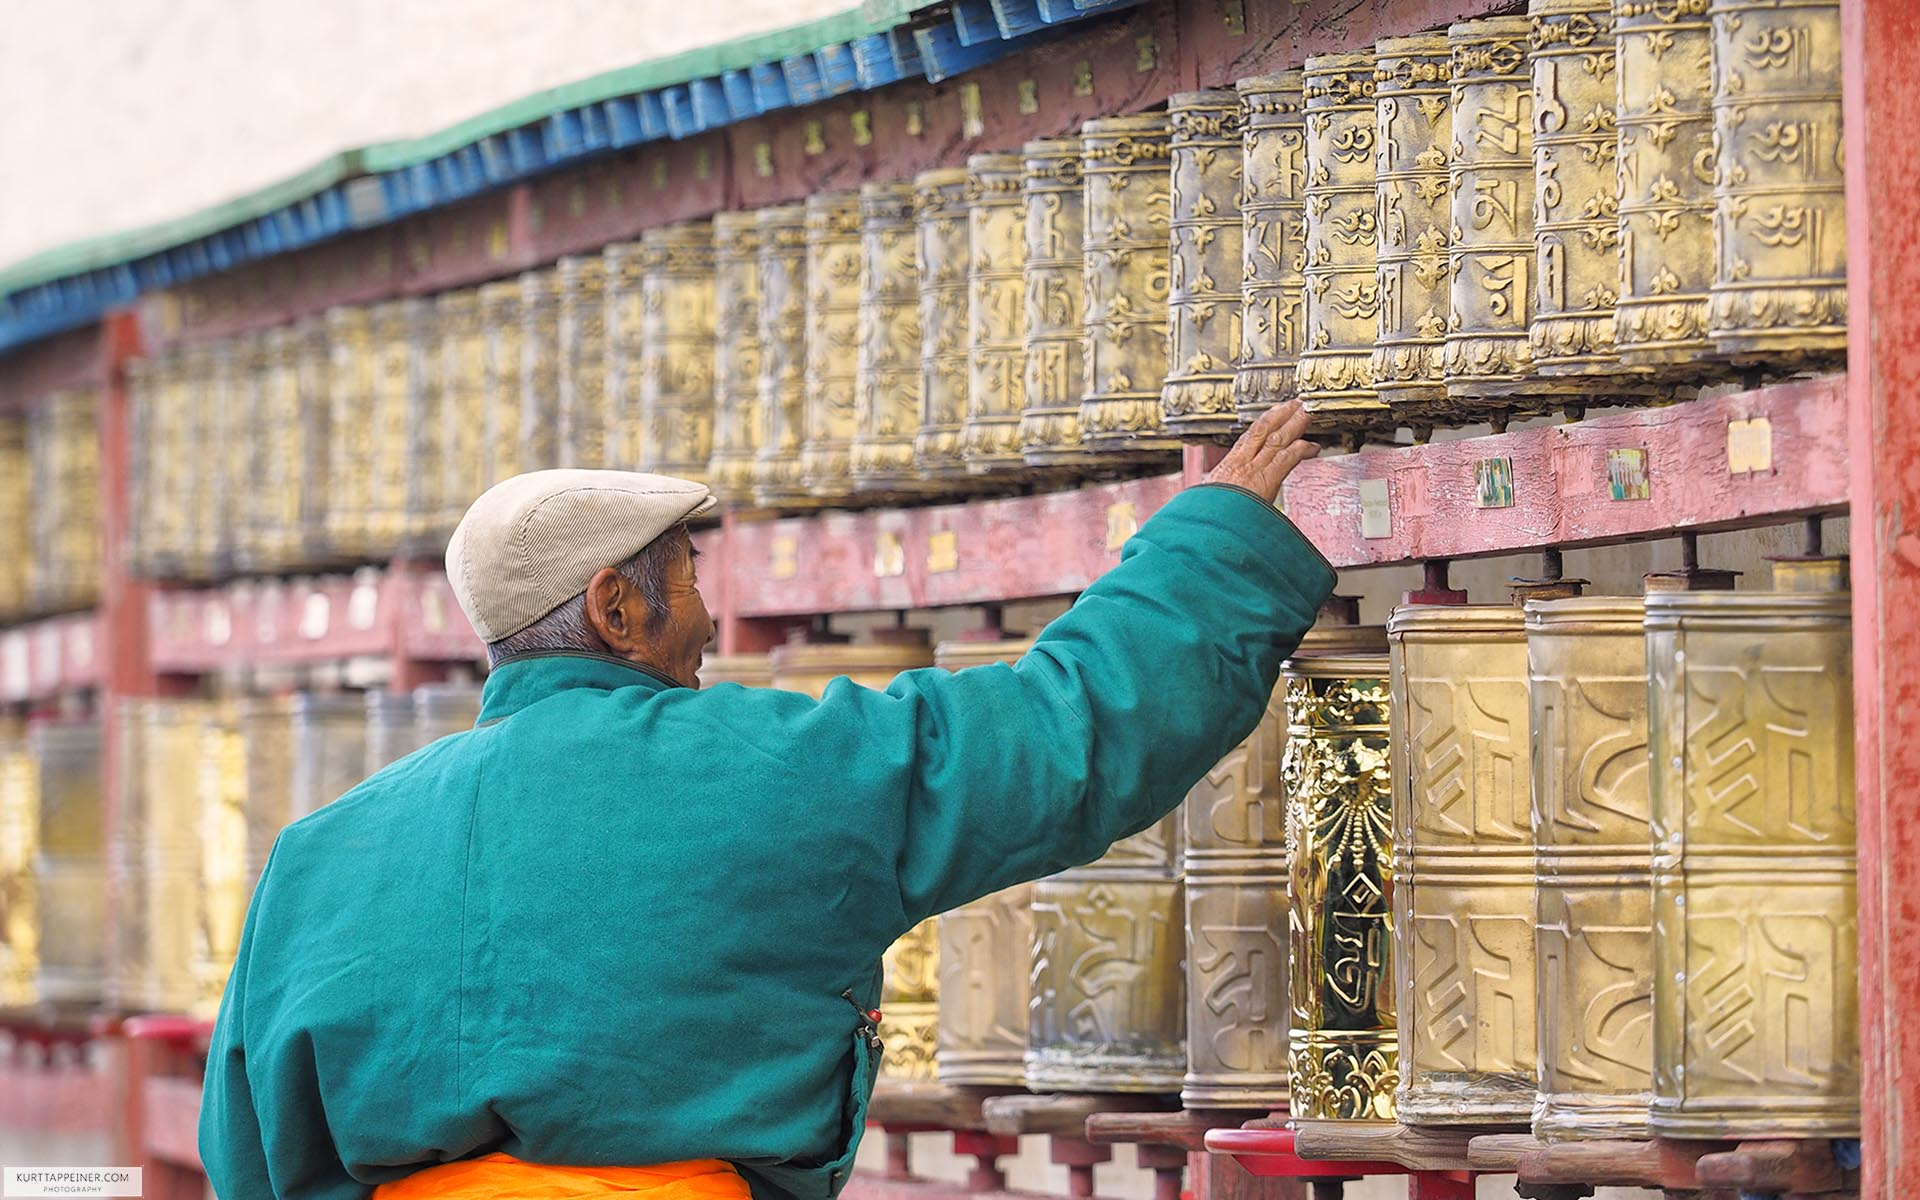 Mongol turns on prayer wheels